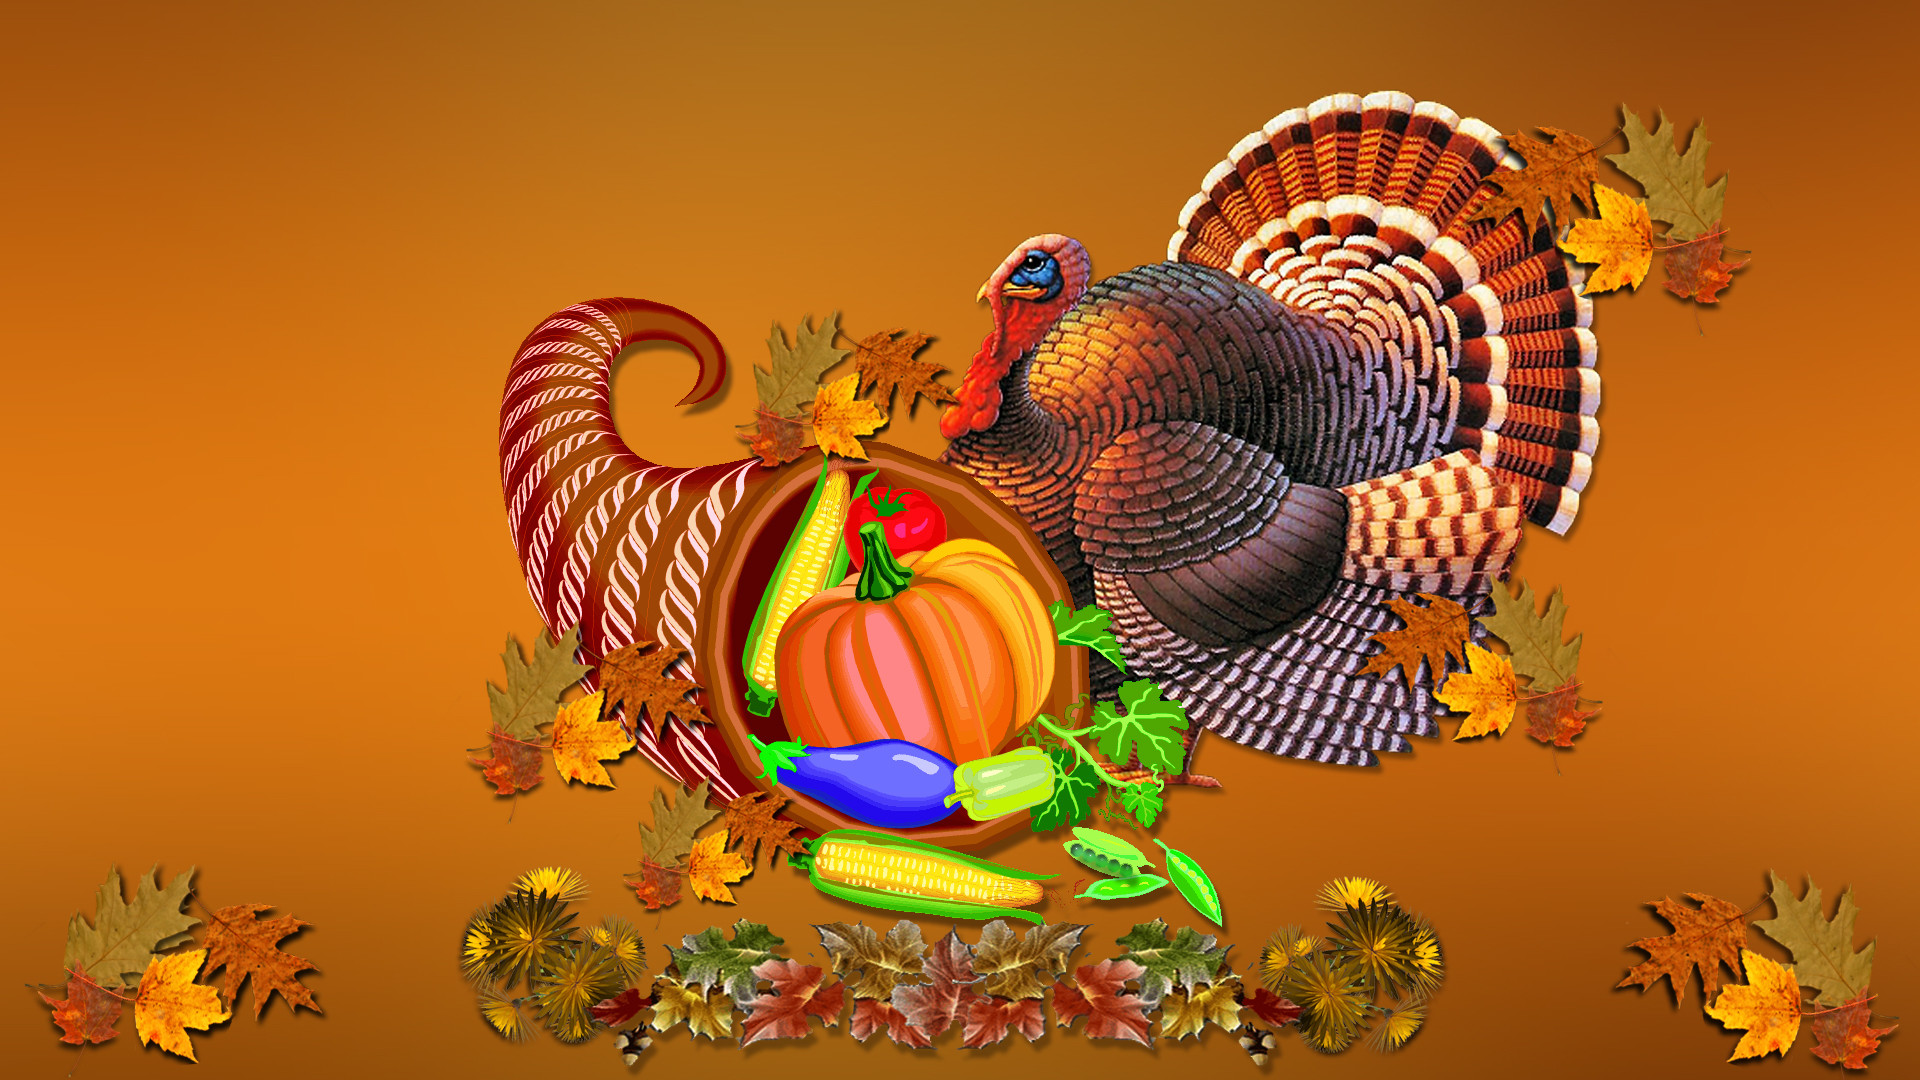 Res: 1920x1080, Thanksgiving Wallpapers 11 - 1920 X 1080